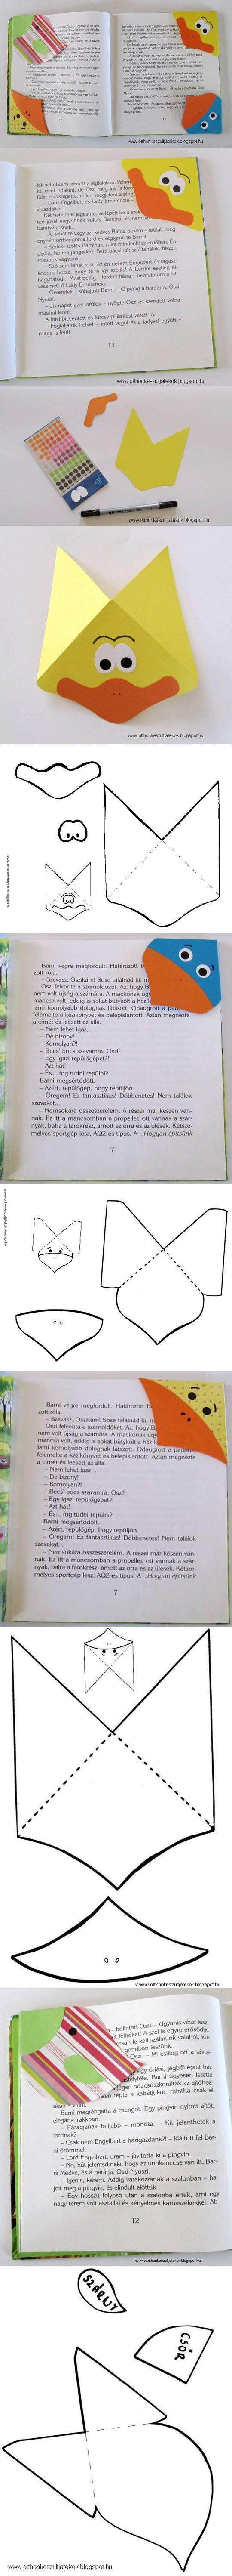 FREE printable bookmark template for kids